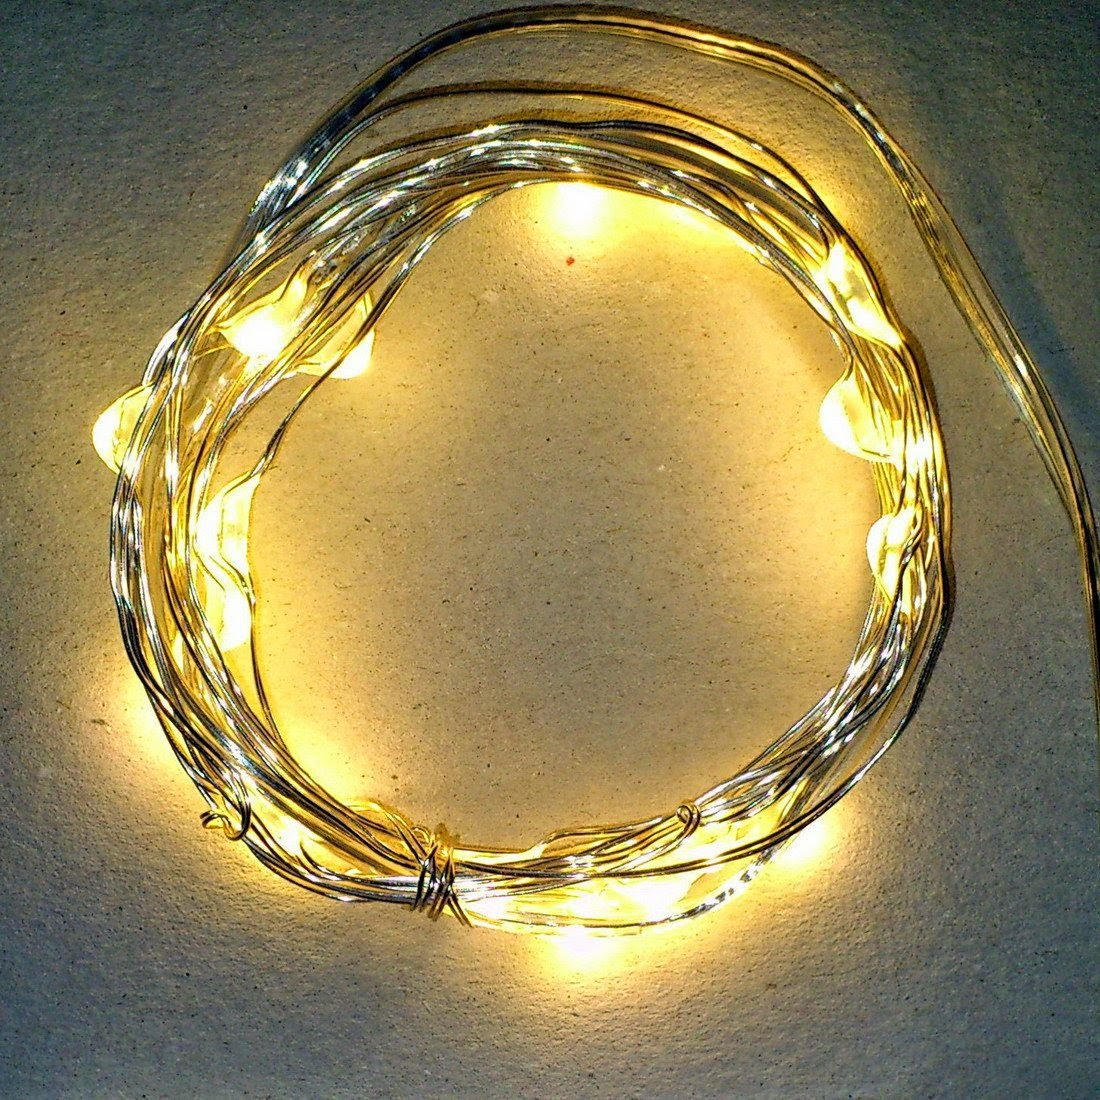 Overhead Light Covers: Covers Ceiling Light Fixture: May 2014